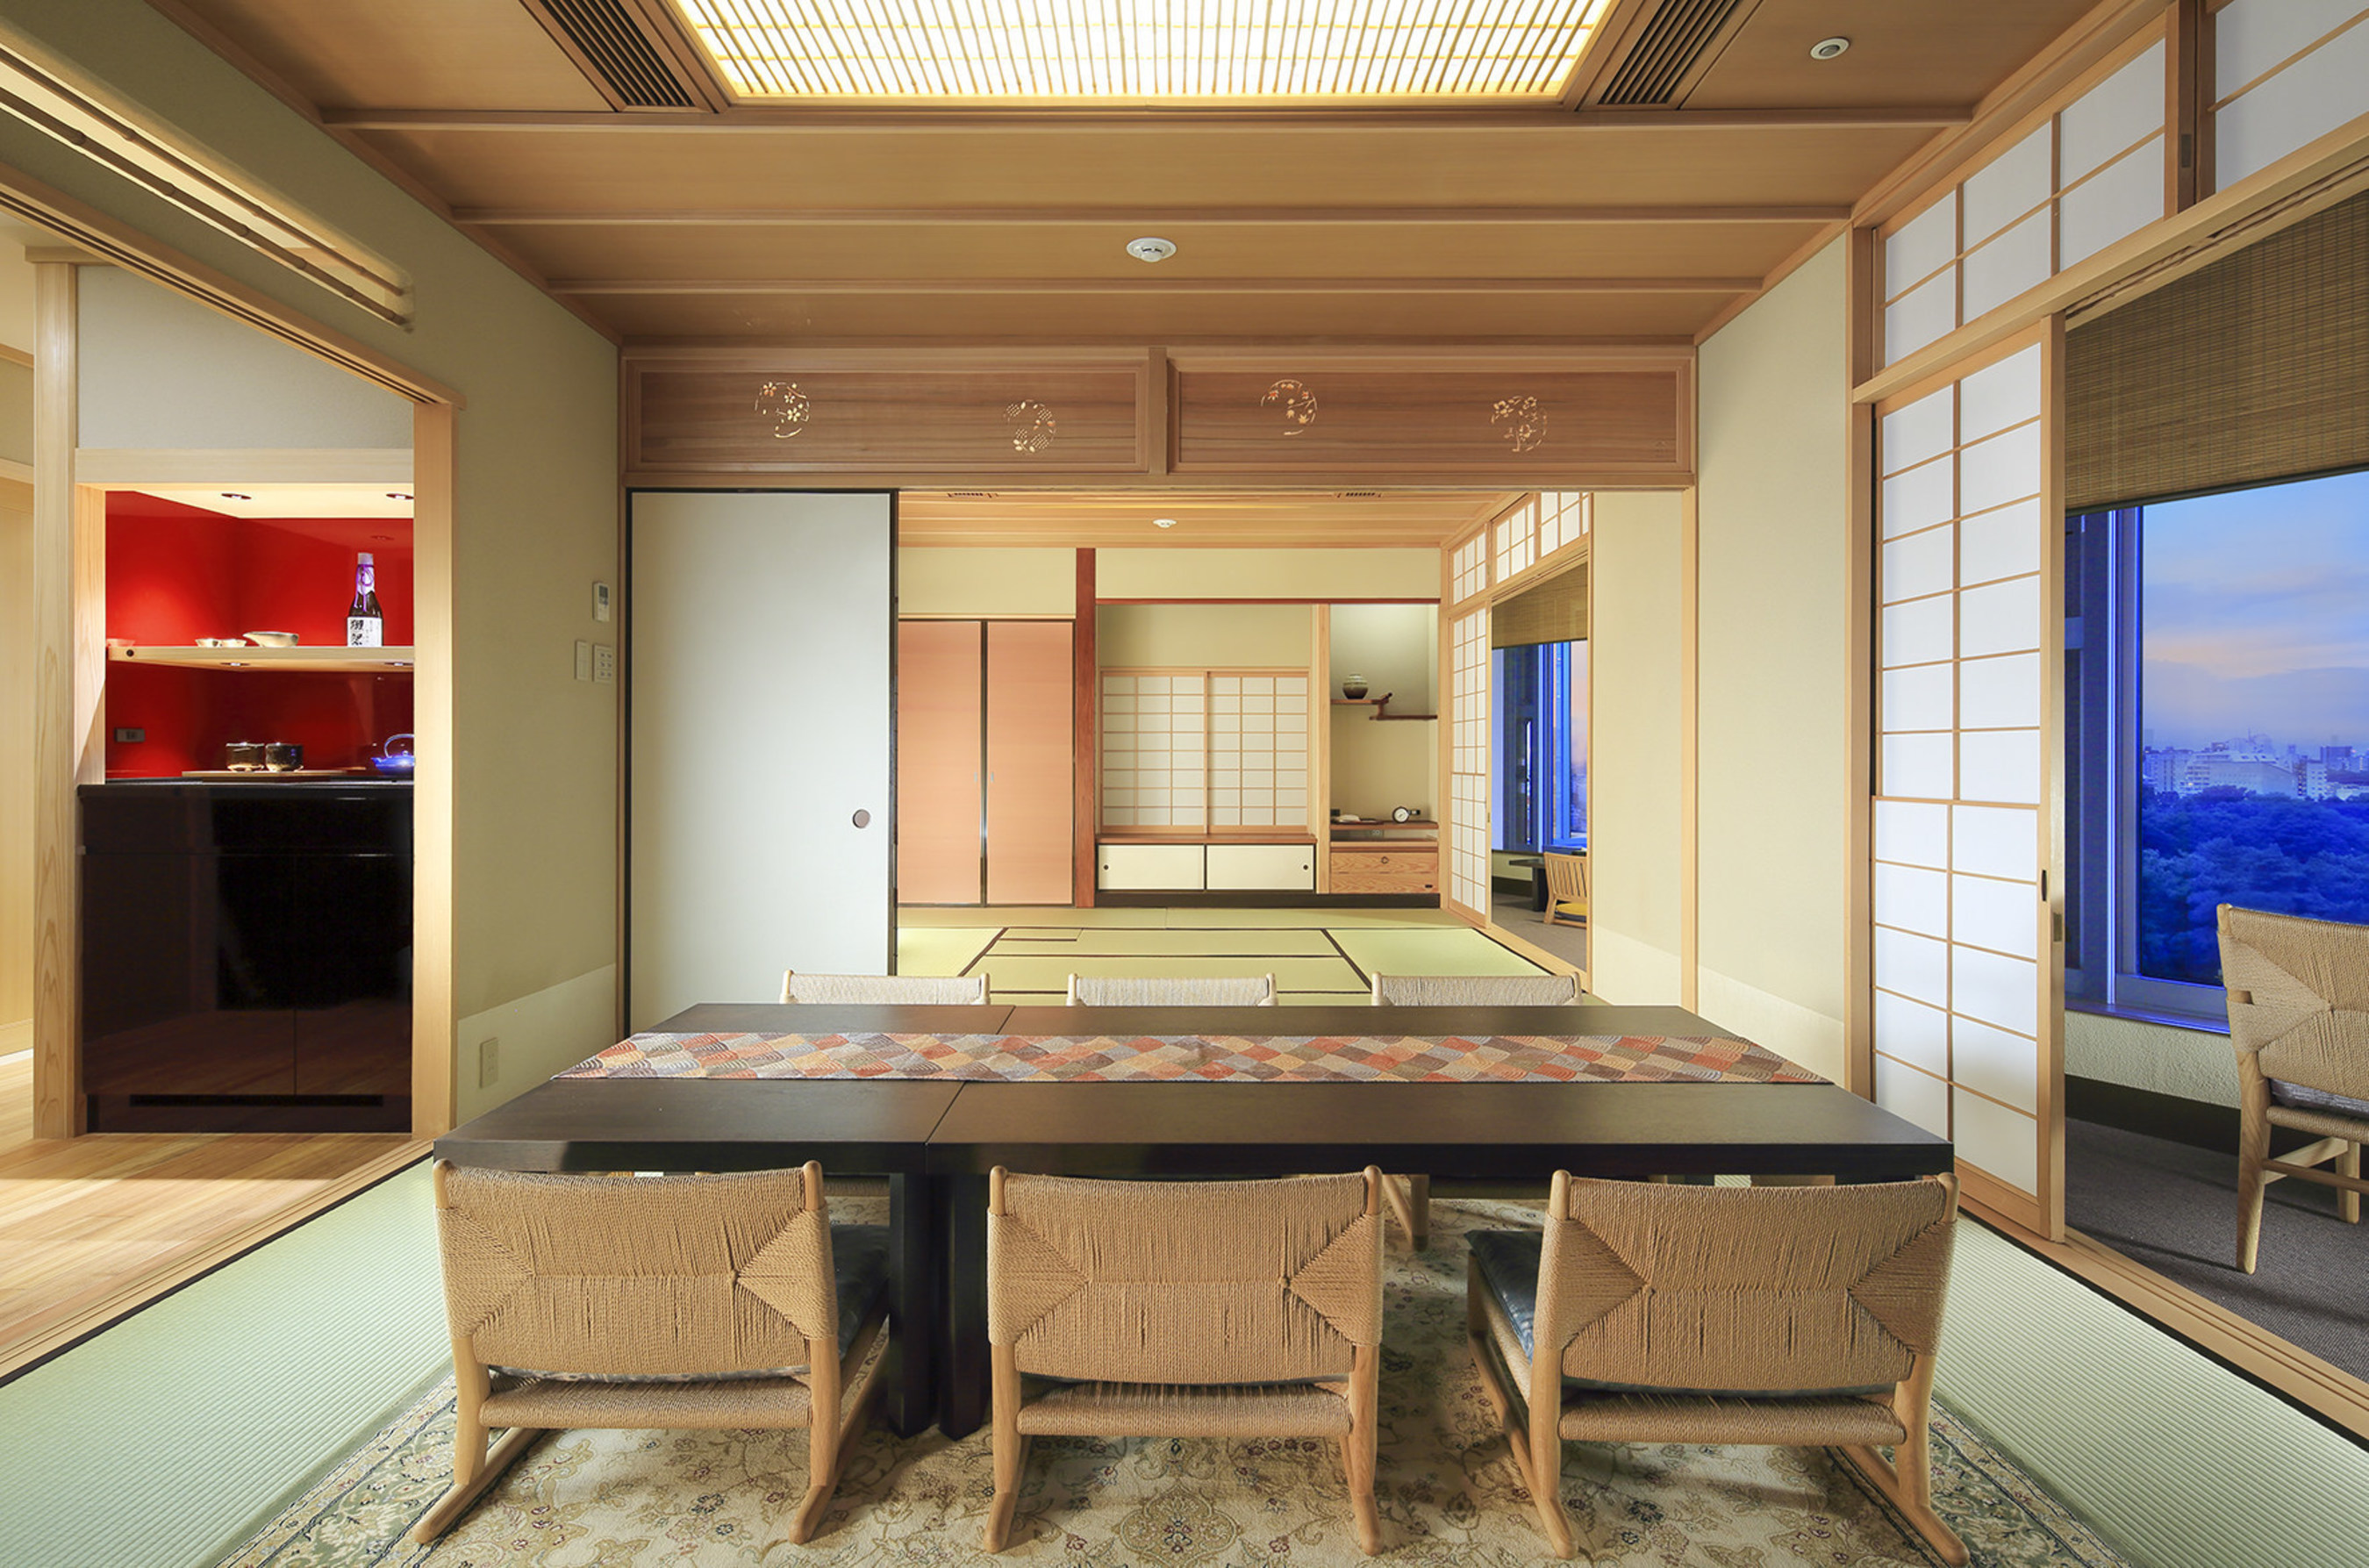 The newly renovated one-of-a-kind Japanese Suite at Hotel Chinzanso Tokyo is the ideal space to experience the breadth of Japanese culture and history. Featuring authentic minimalist elements of traditional tea houses, the decor emphasizes Japanese craftsmanship using precious materials such as camellia trees, mikage stone, and aromatic Japanese cypress. Beneath the traditional look, the suite is equipped with modern amenities including a portable waterproof television and two mini bar areas offering...